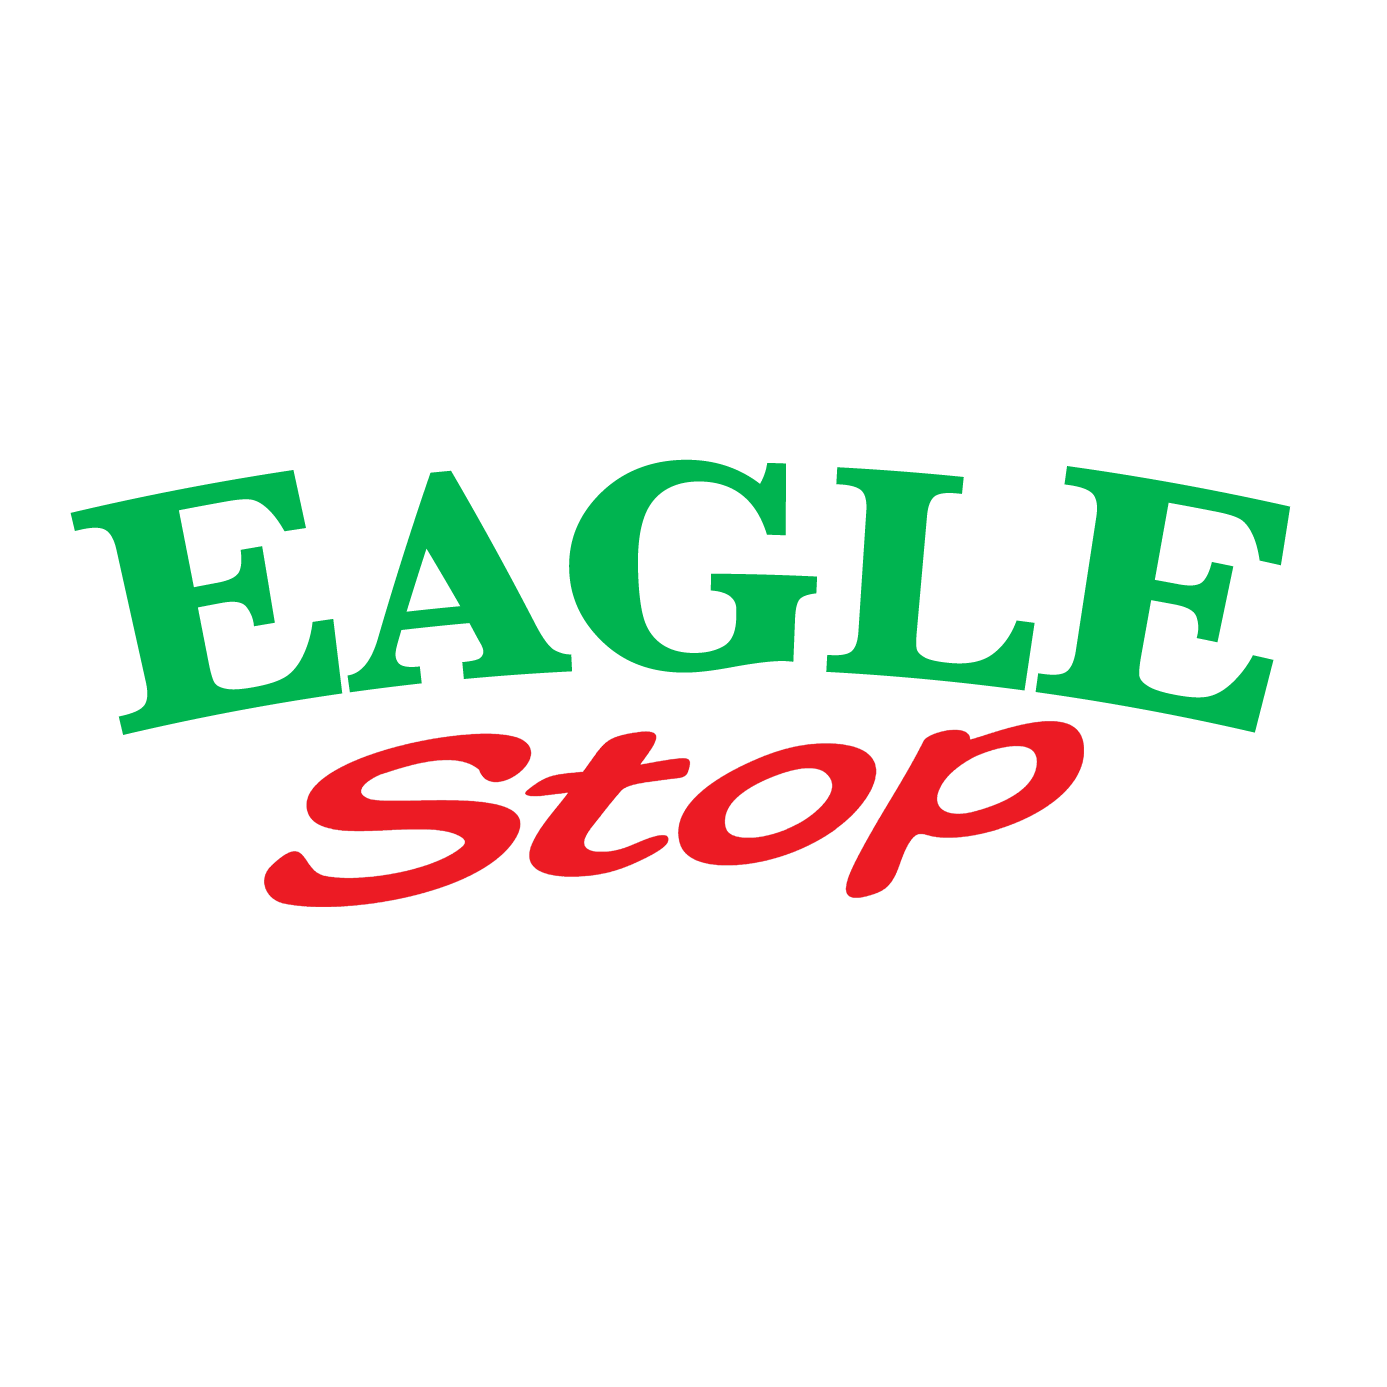 Lakers Eagle Stop